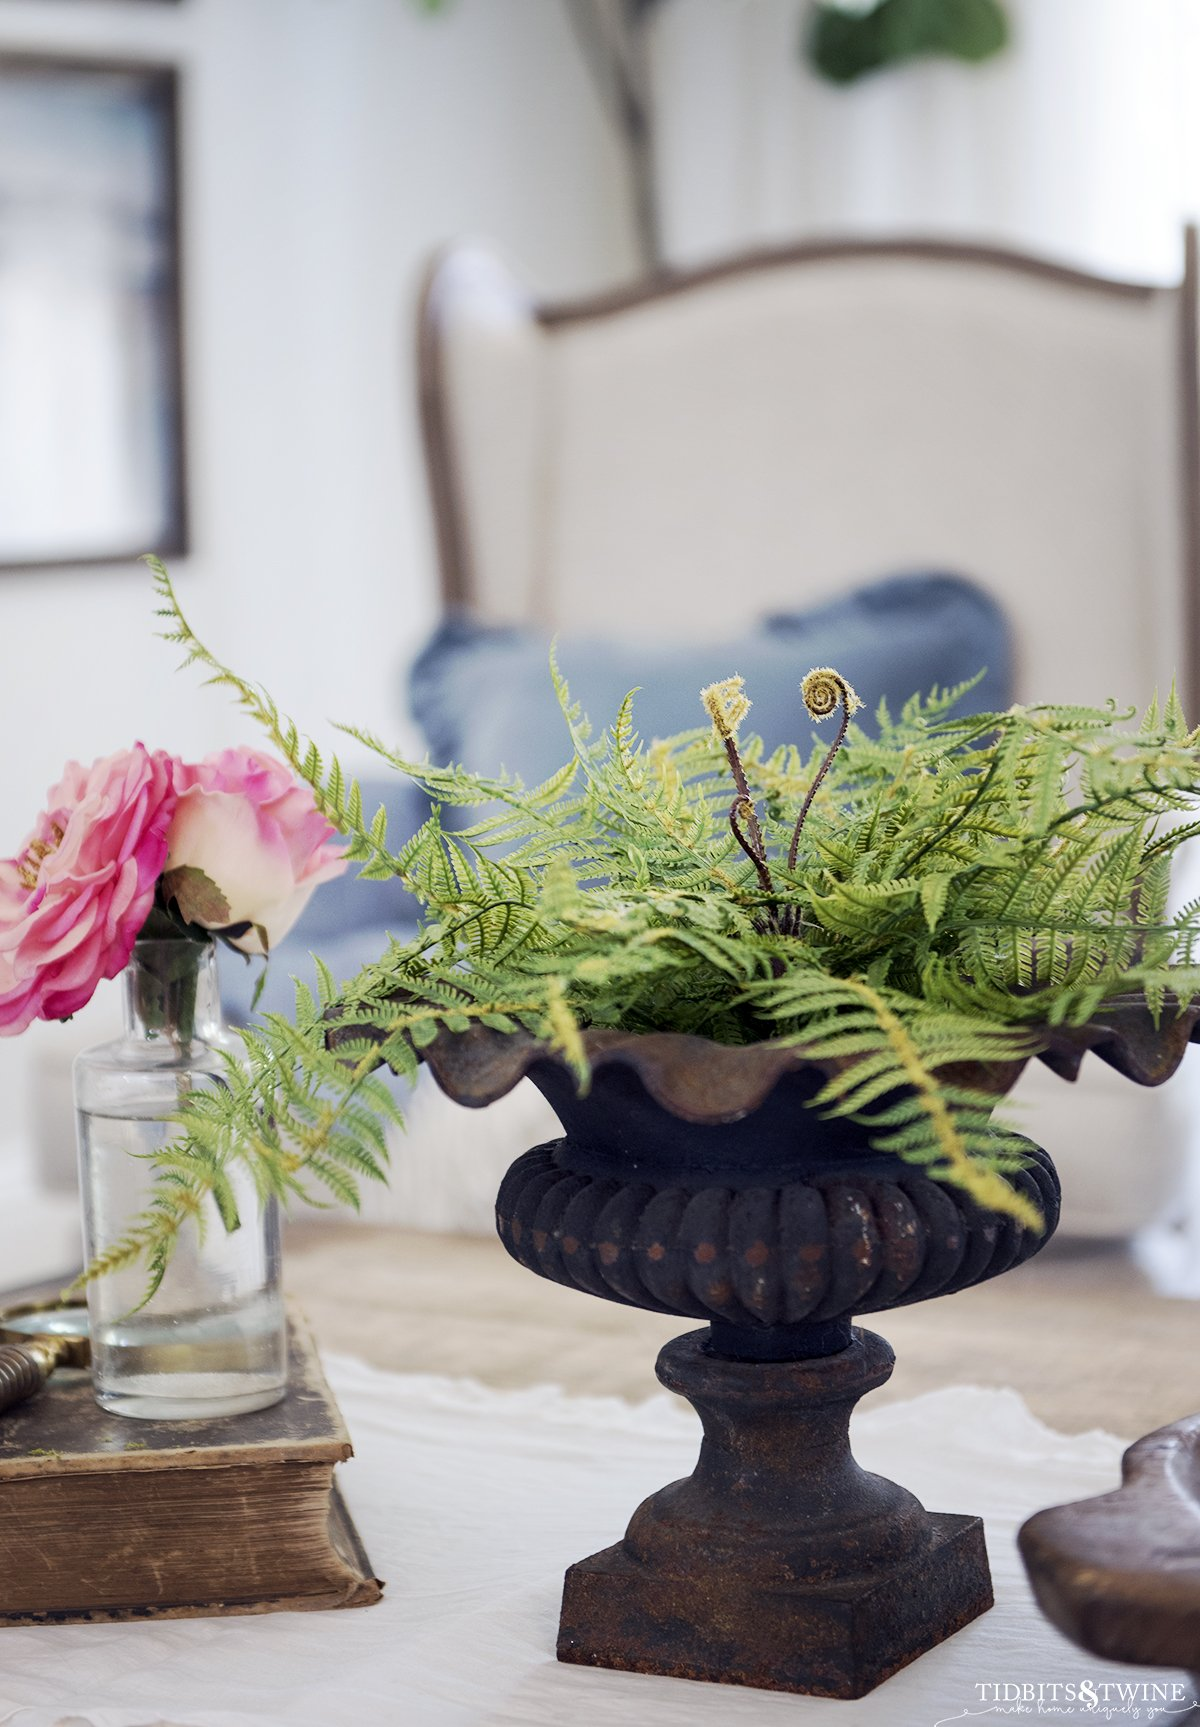 Iron urn with fake fern on coffee table with white runner and old book with pink rose